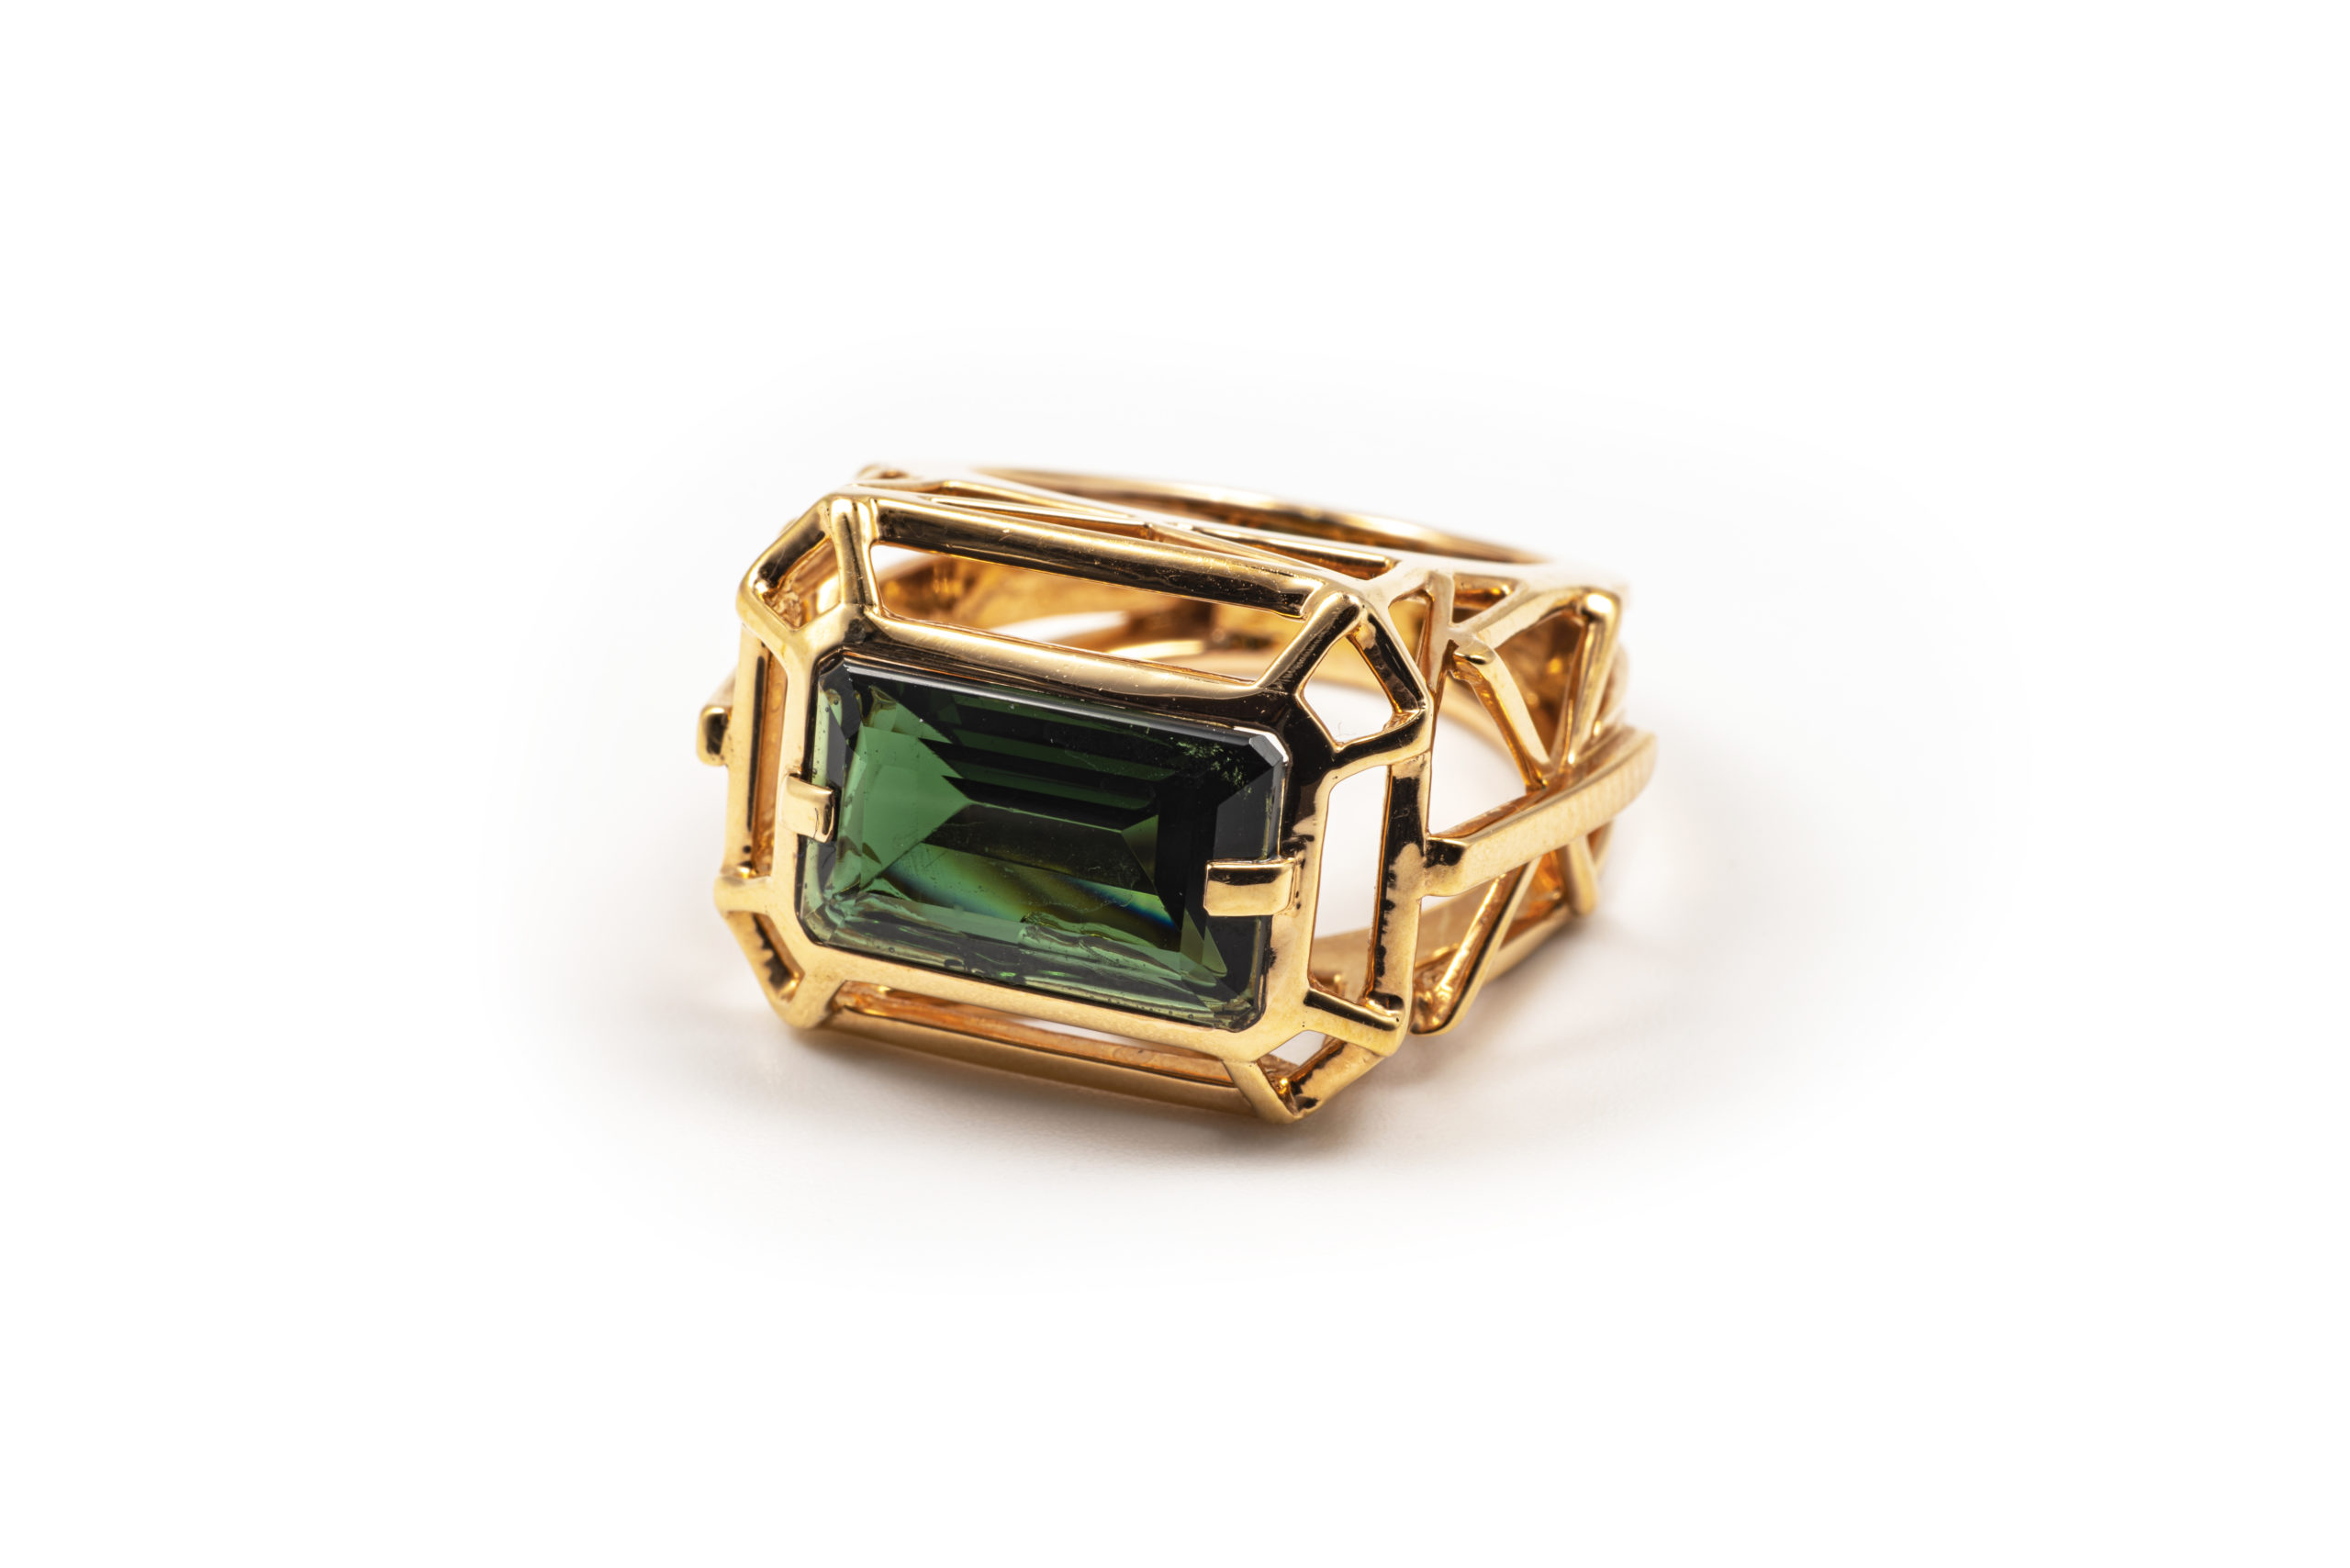 Colored gemstones as an investment - invest in your twenties